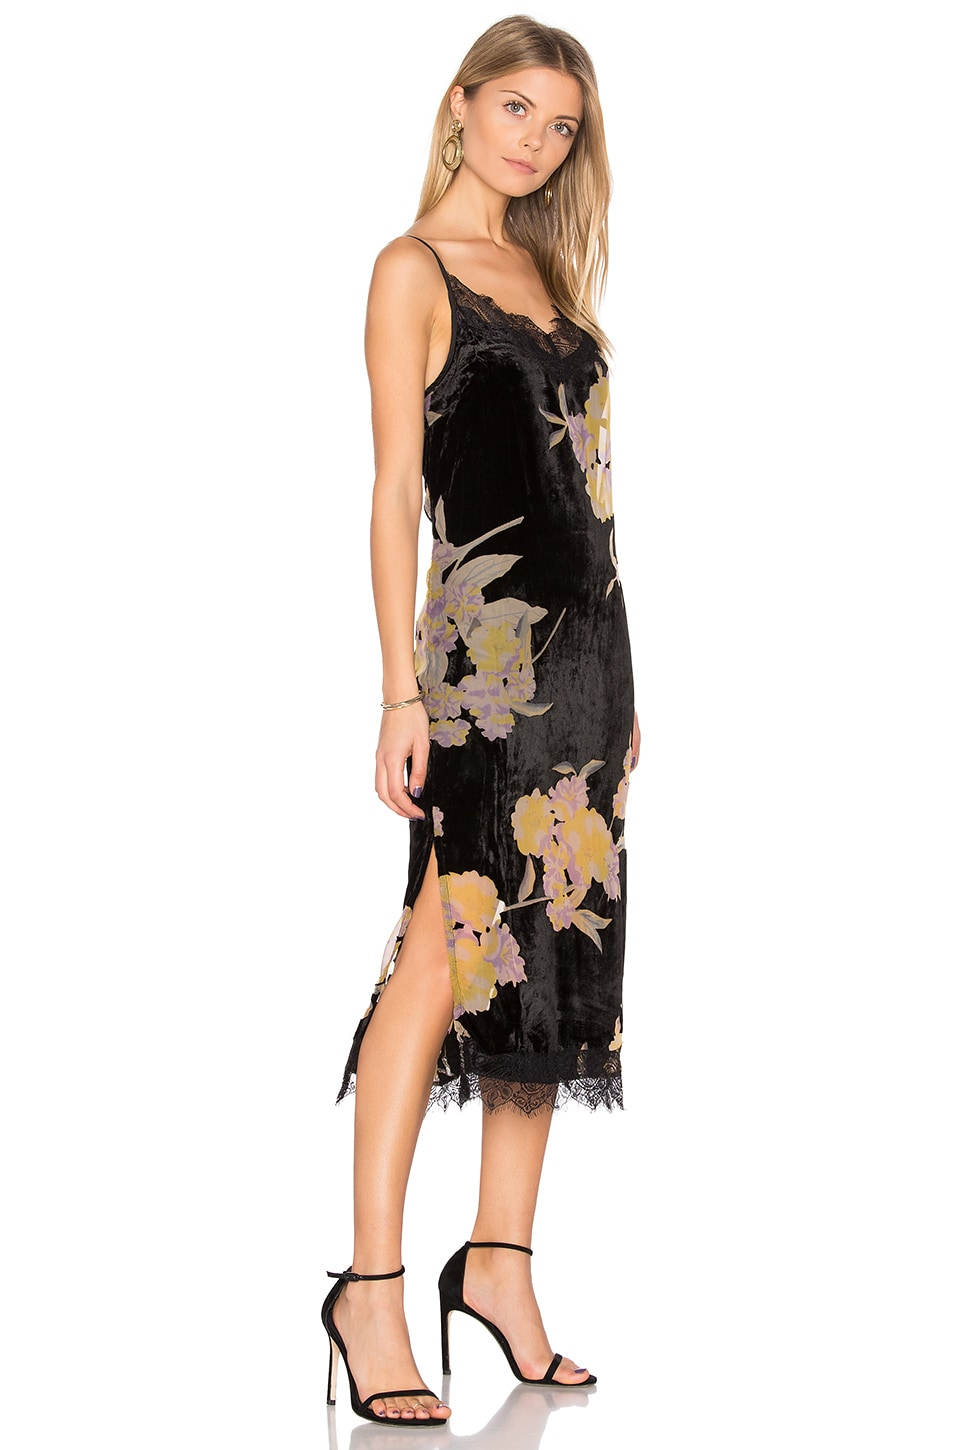 Band of Gypsies Burnout Velvet Midi Dress in Black & Yellow